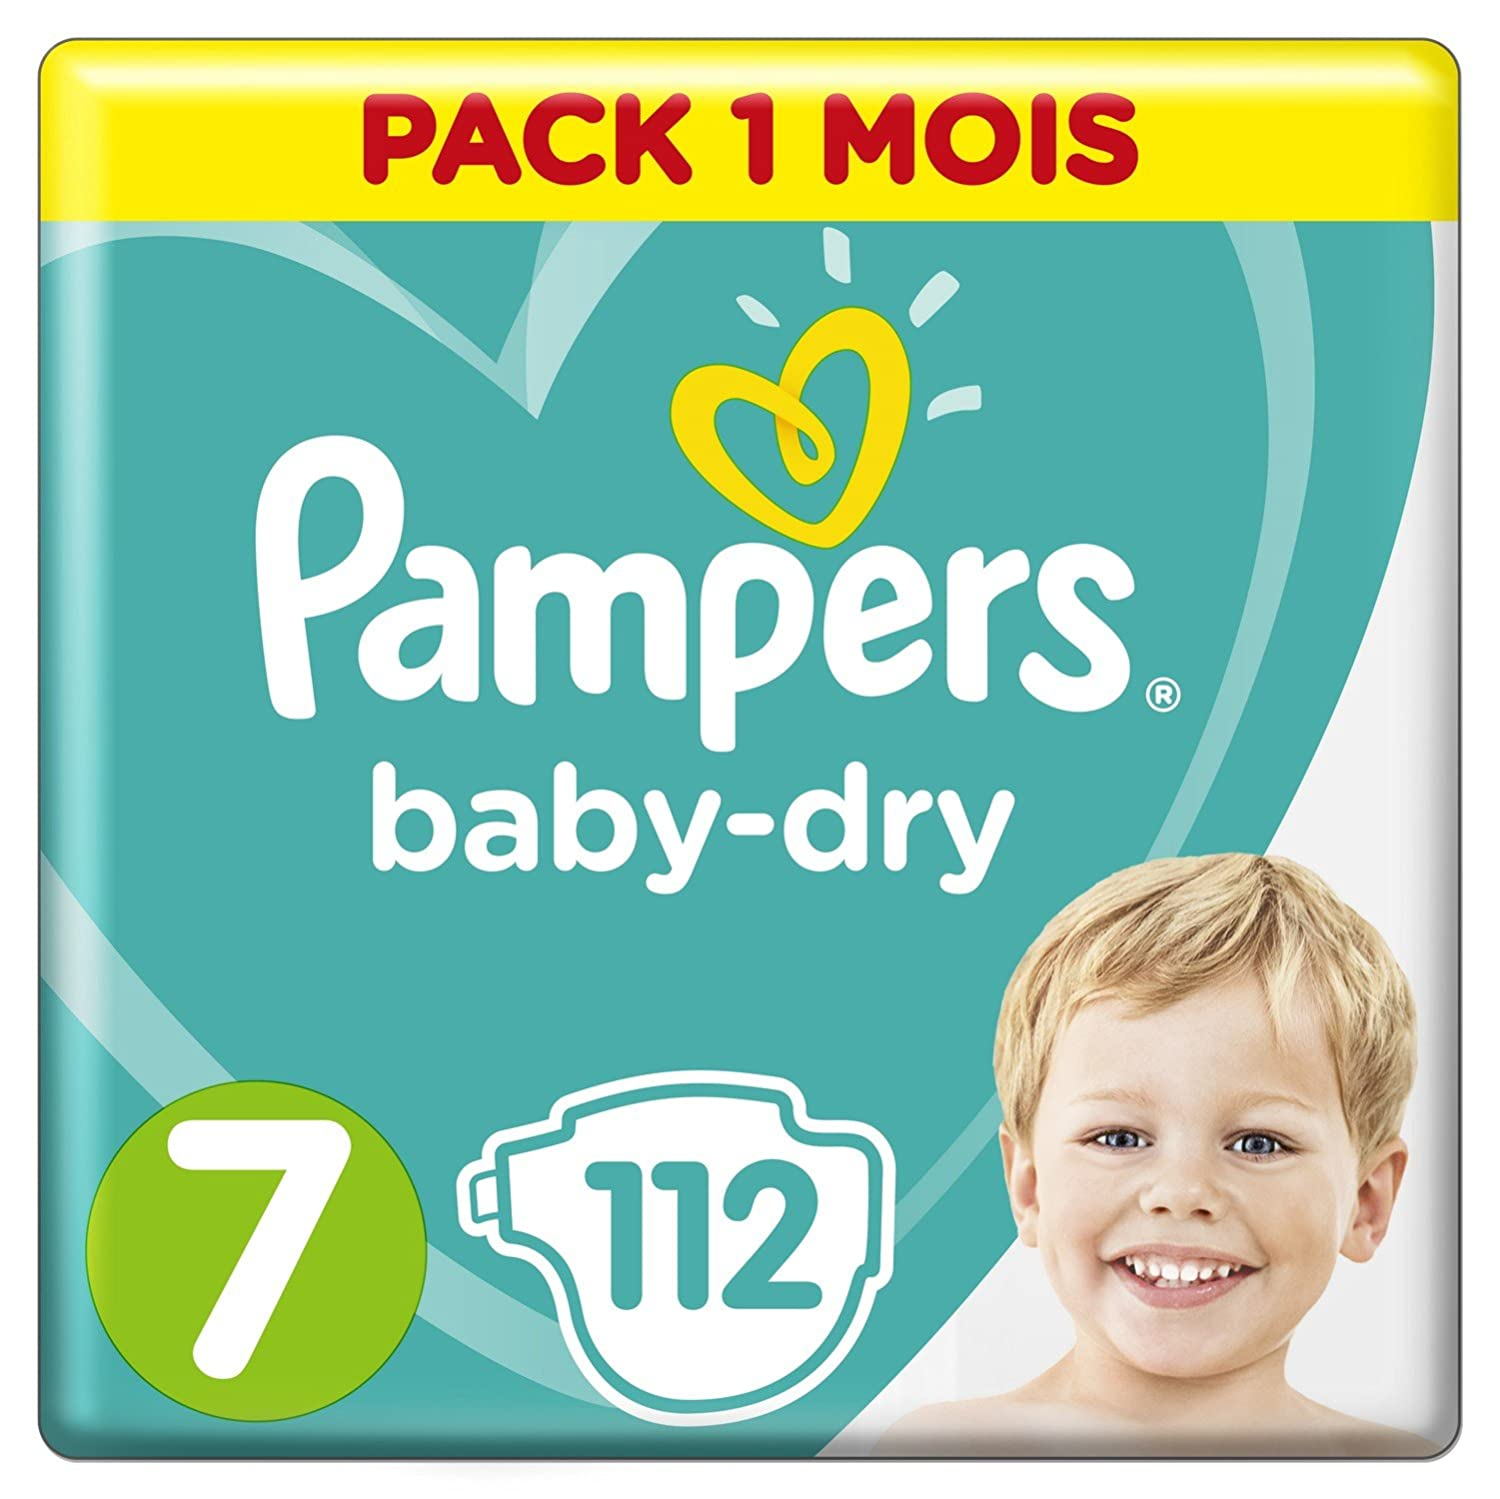 Pampers - Baby Dry - Couches Taille 5 (11-16, 11-23 kg) - Pack 1 mois (x144 couches) 81398469